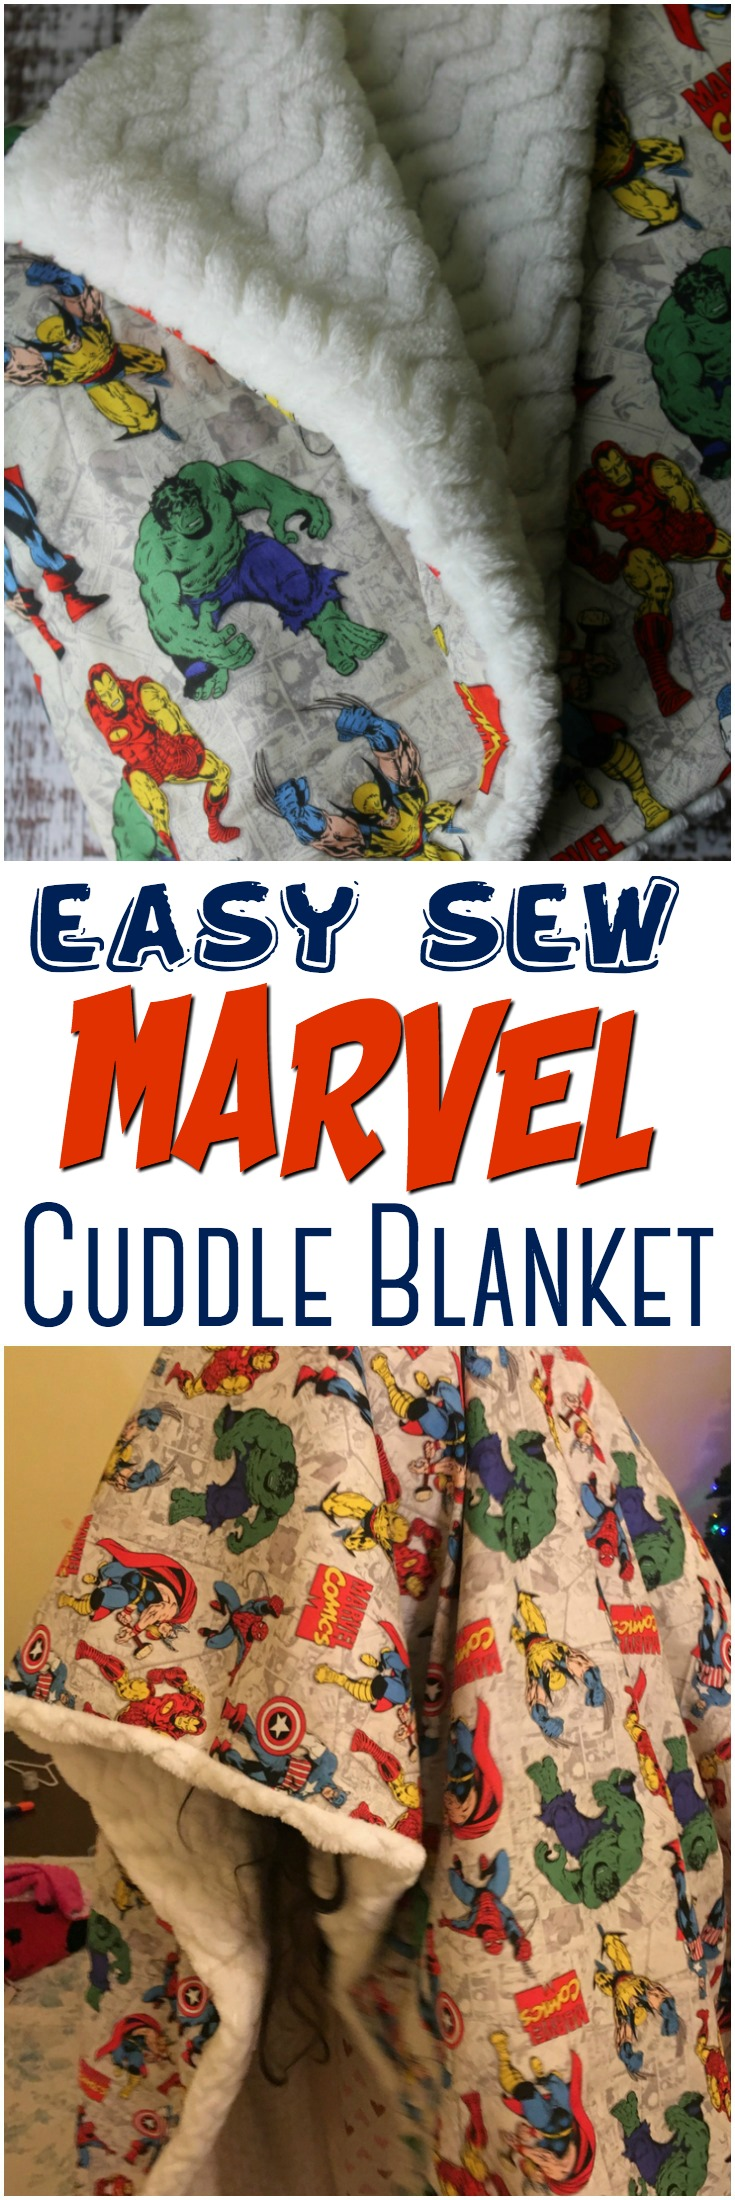 Superhero Novelty Cuddle Blanket: A custom superhero novelty cuddle blanket is the perfect gift for kids of all ages! Grab your fabric and follow this easy-sew DIY! #sewing #cuddleblanket #marvel #superhero #gift #handmadegift #blanket